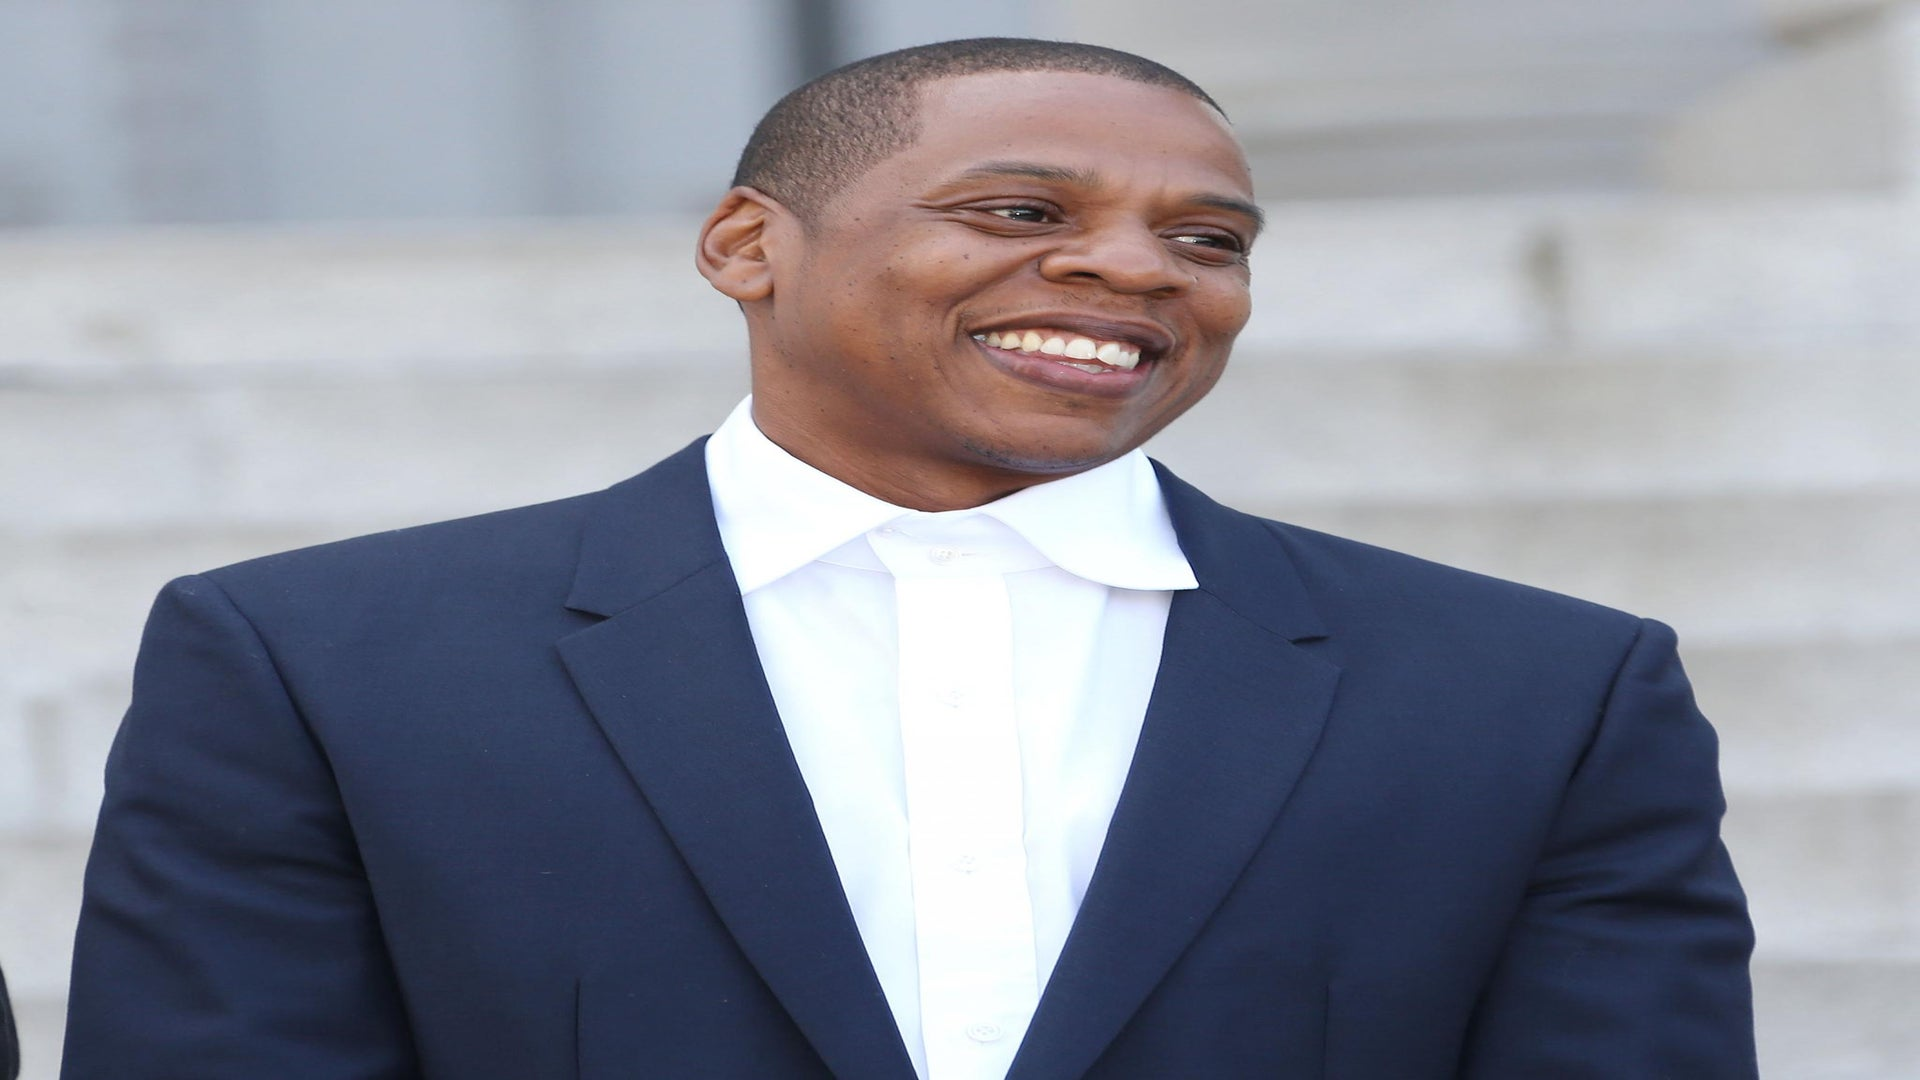 Jay-Z Takes On Kalief Browder Story In First TV Project